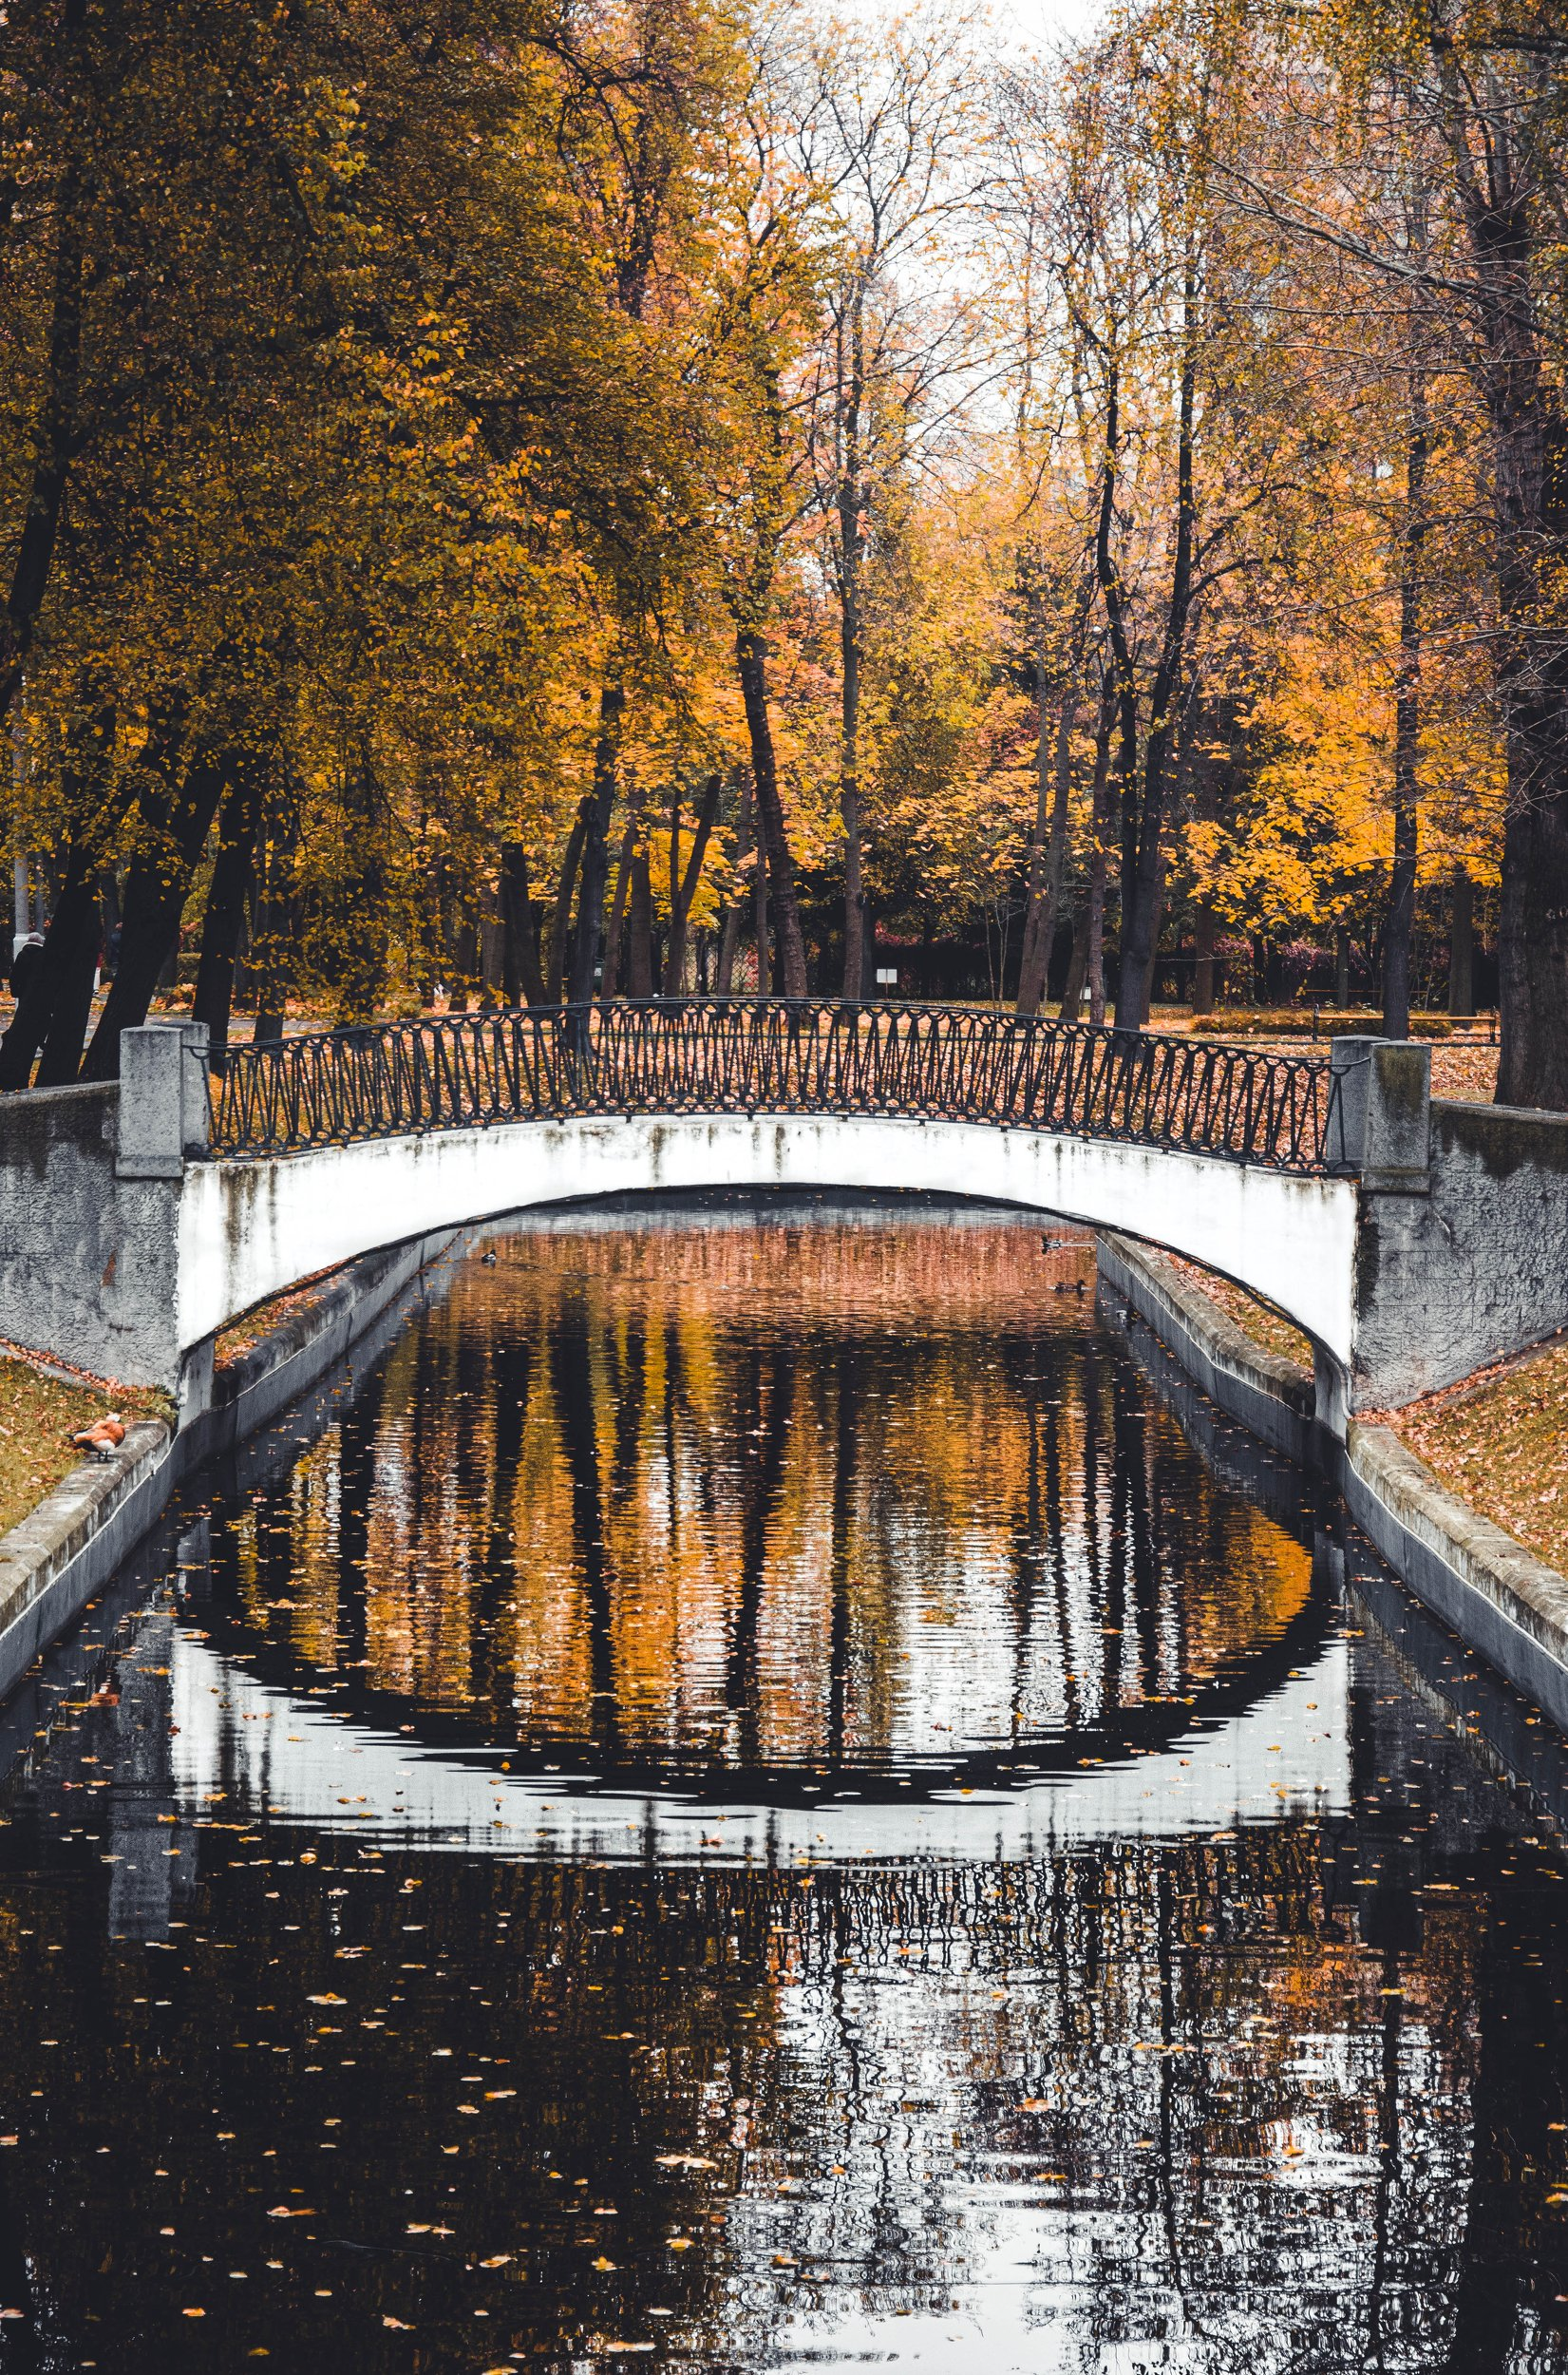 autumn, fall, yellow, refliction, architecture, park, nature, river, water, Moscow, Russia, Гладков Сергей